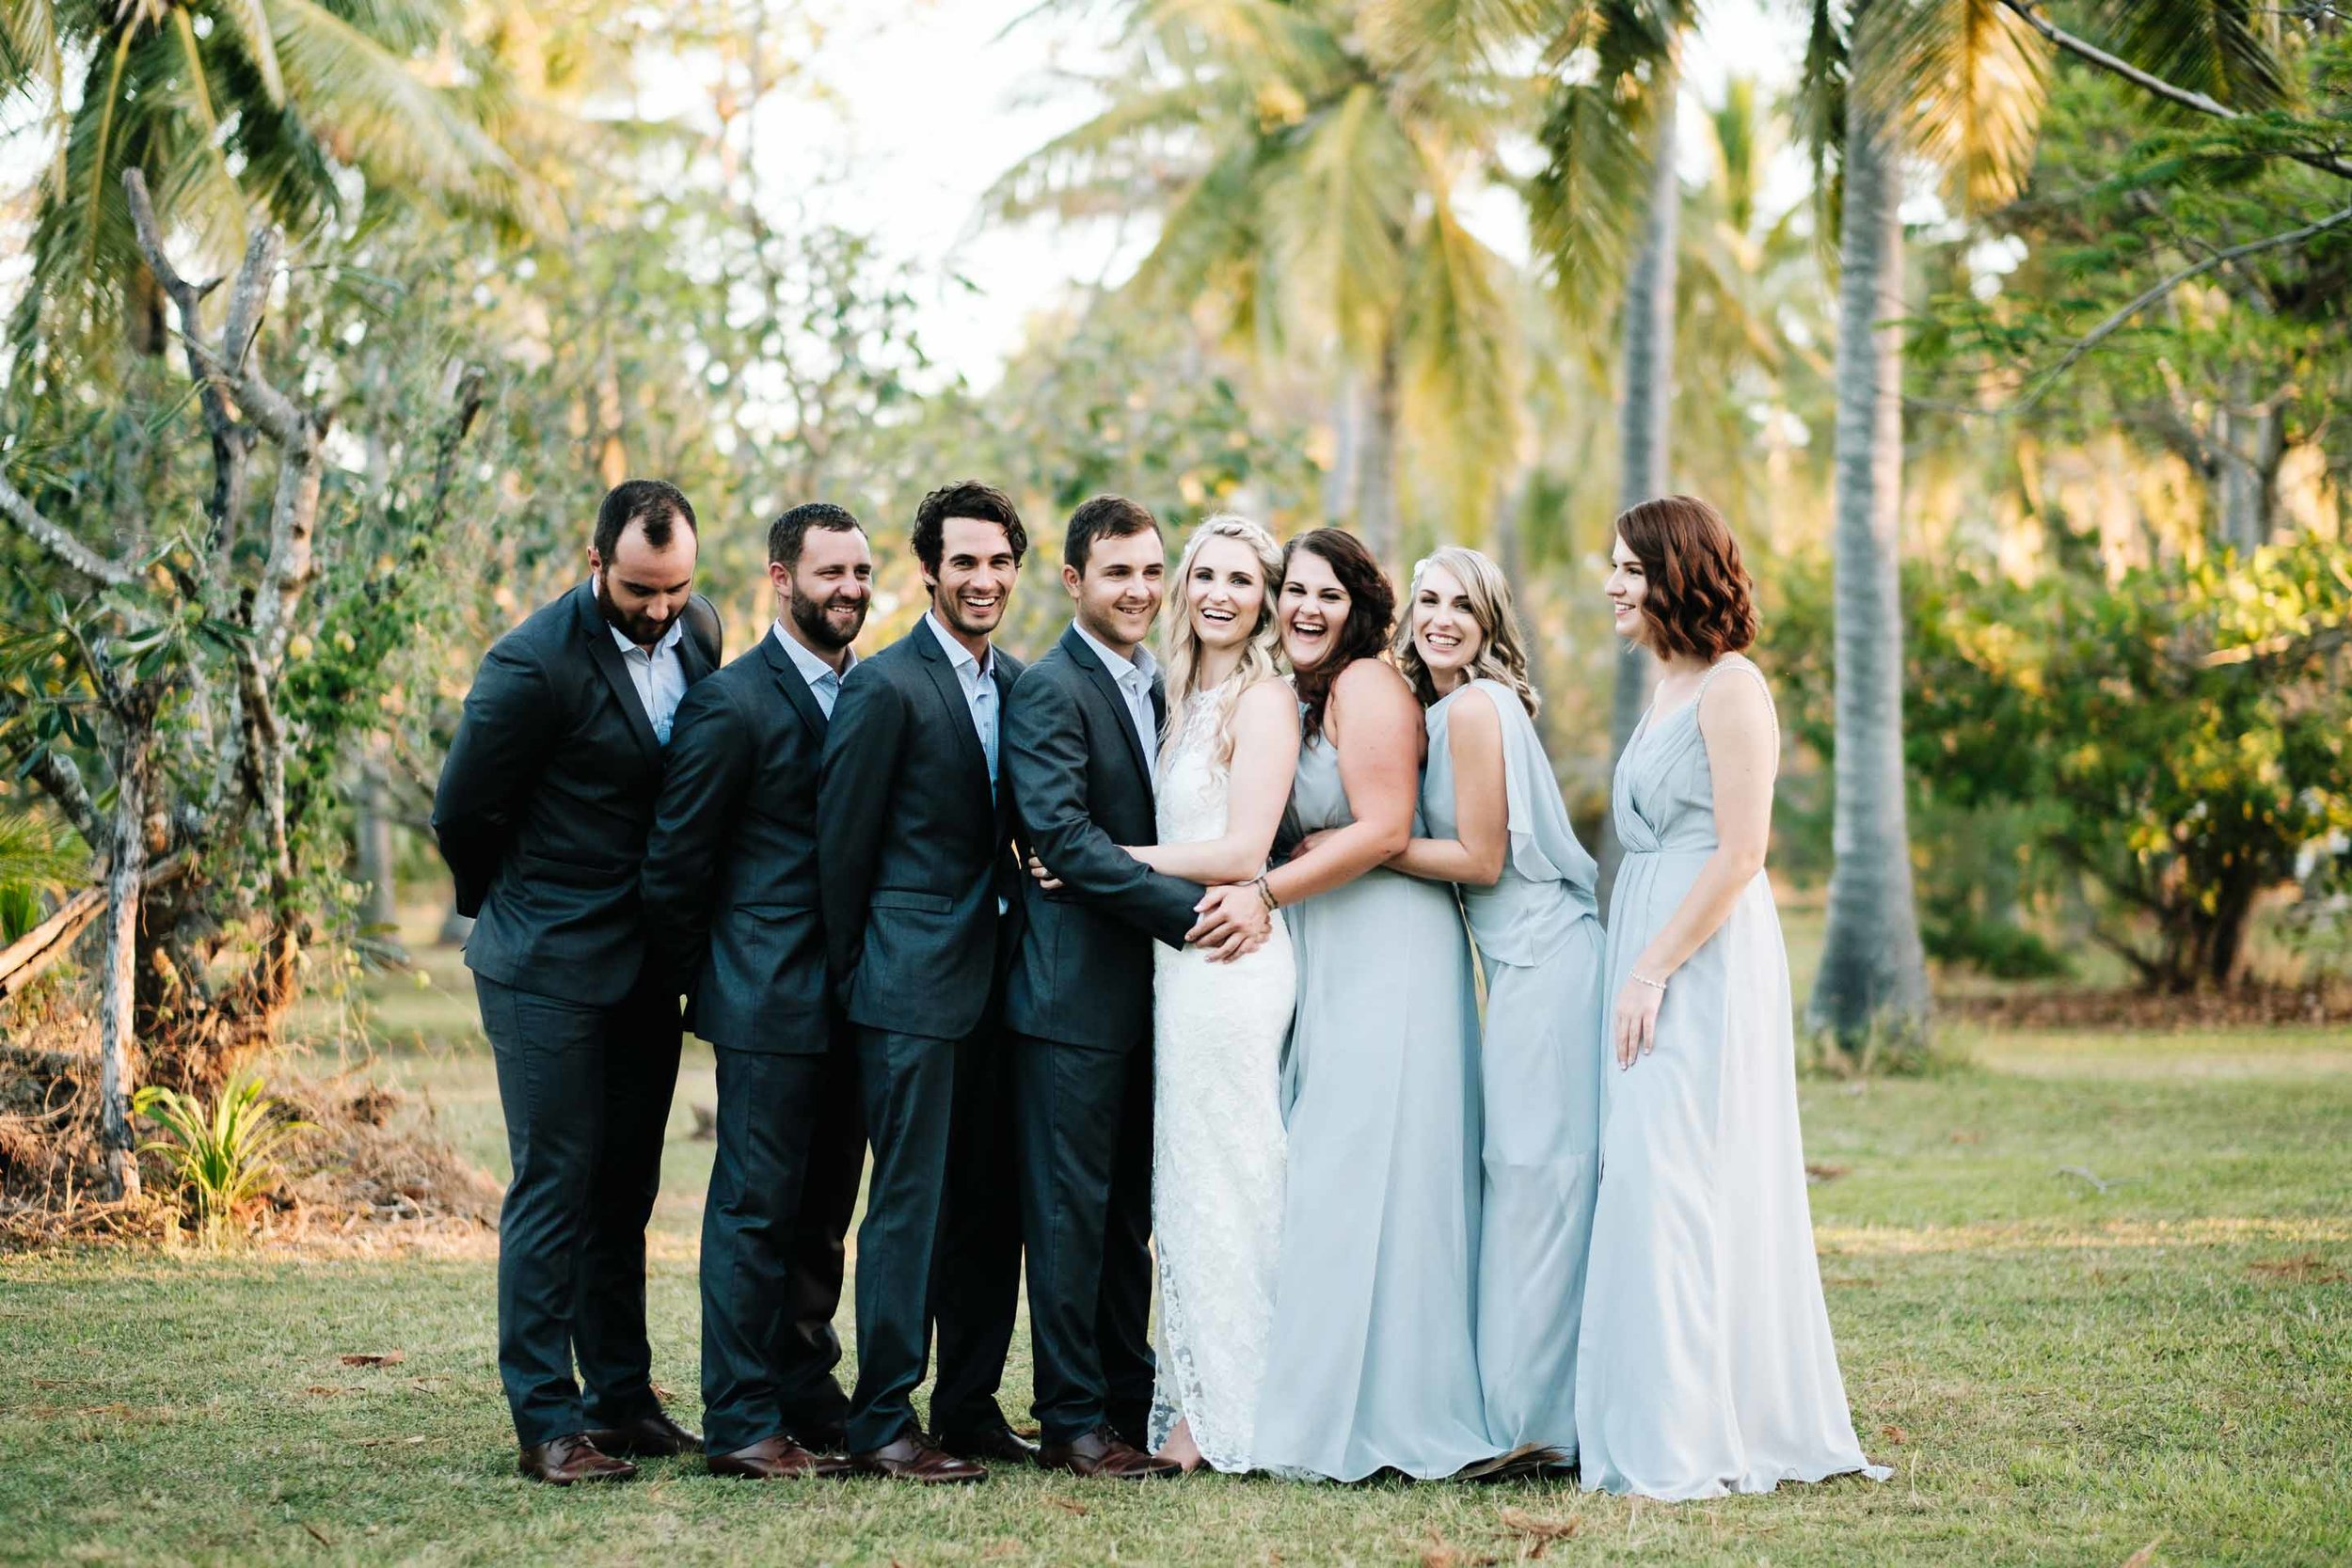 the bridal party together in the grounds behind Lomani Island Resort sharing a group hug